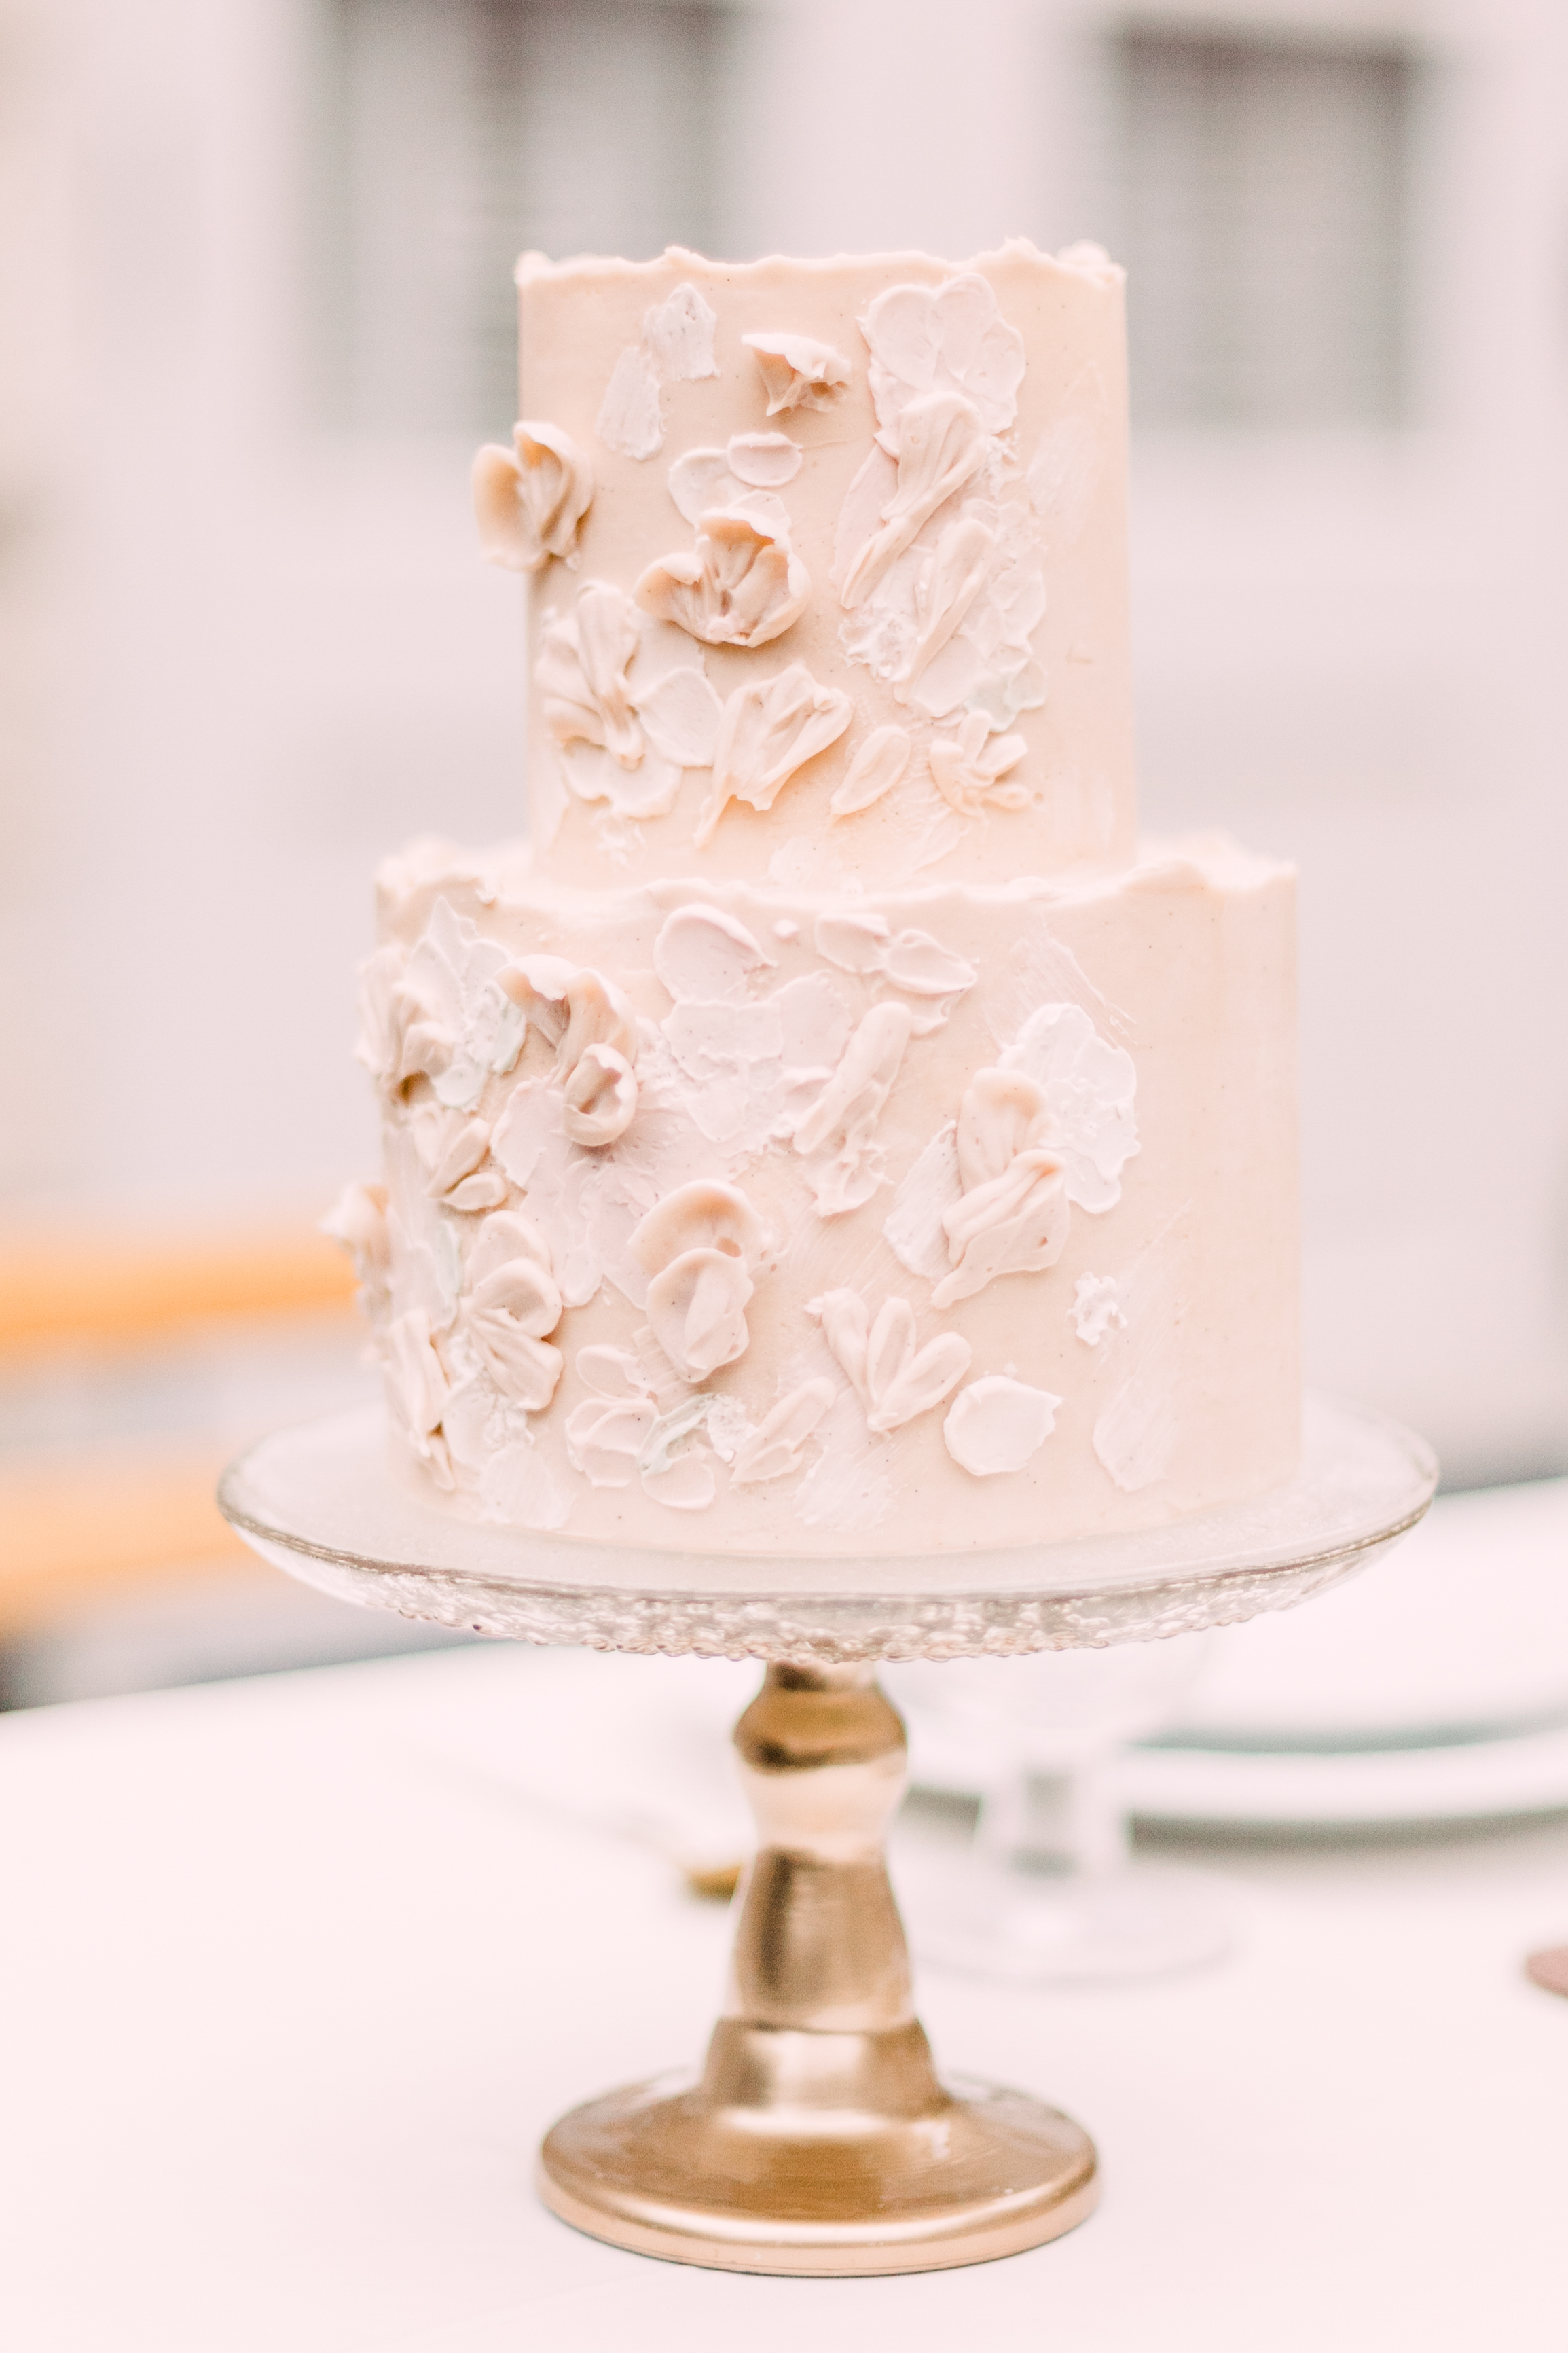 Wedding Cake at Chateau Bellevue in Austin, Texas